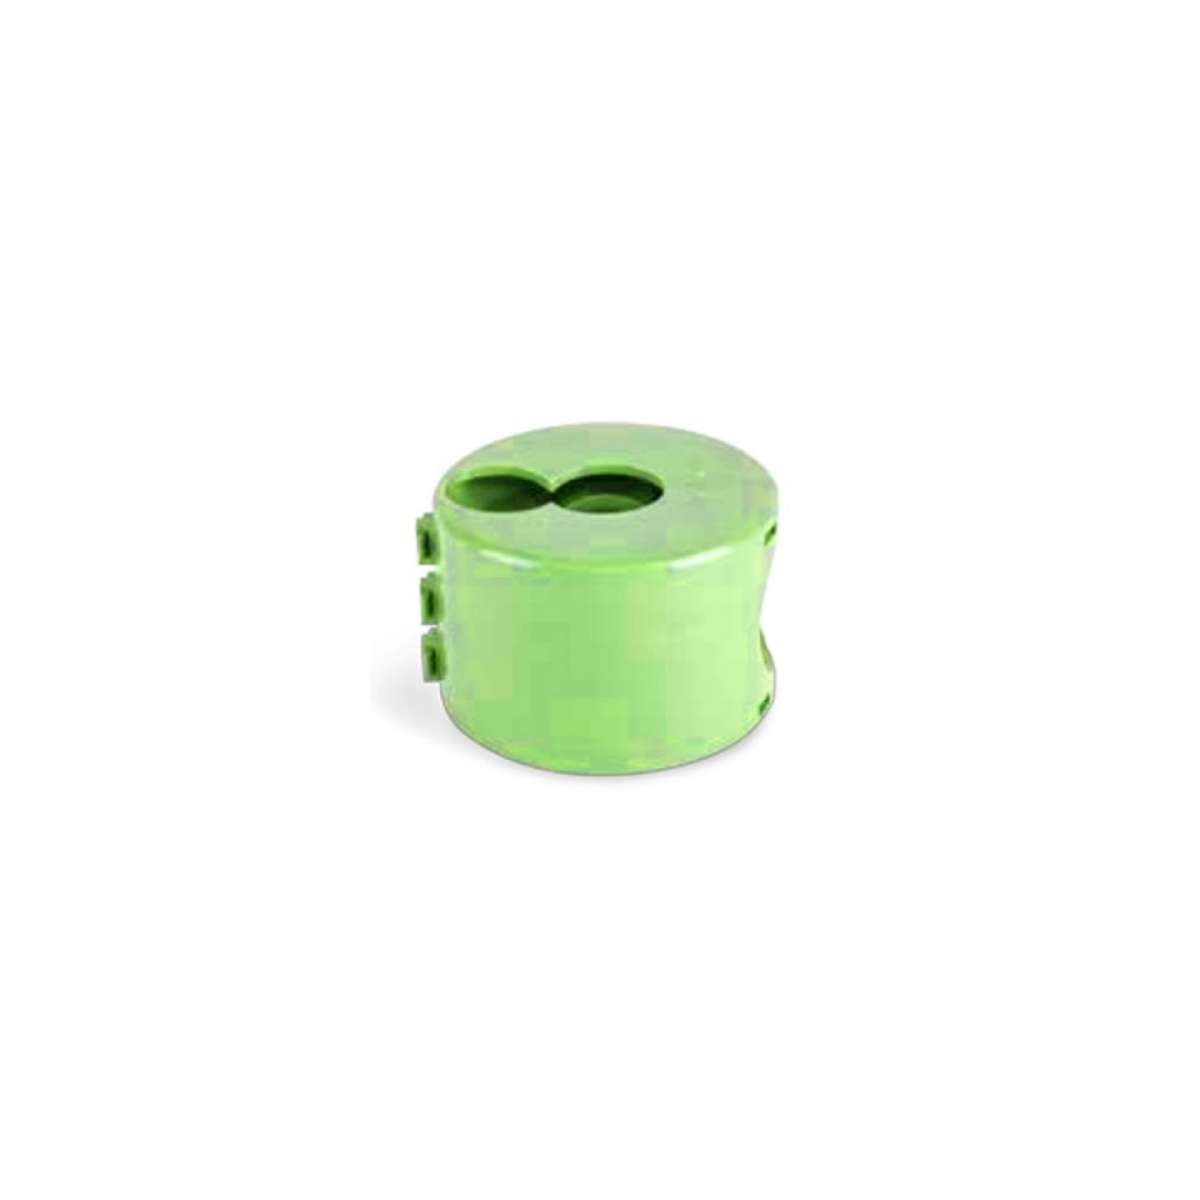 IsoLink Pump Color-Coding Ring - Light Green